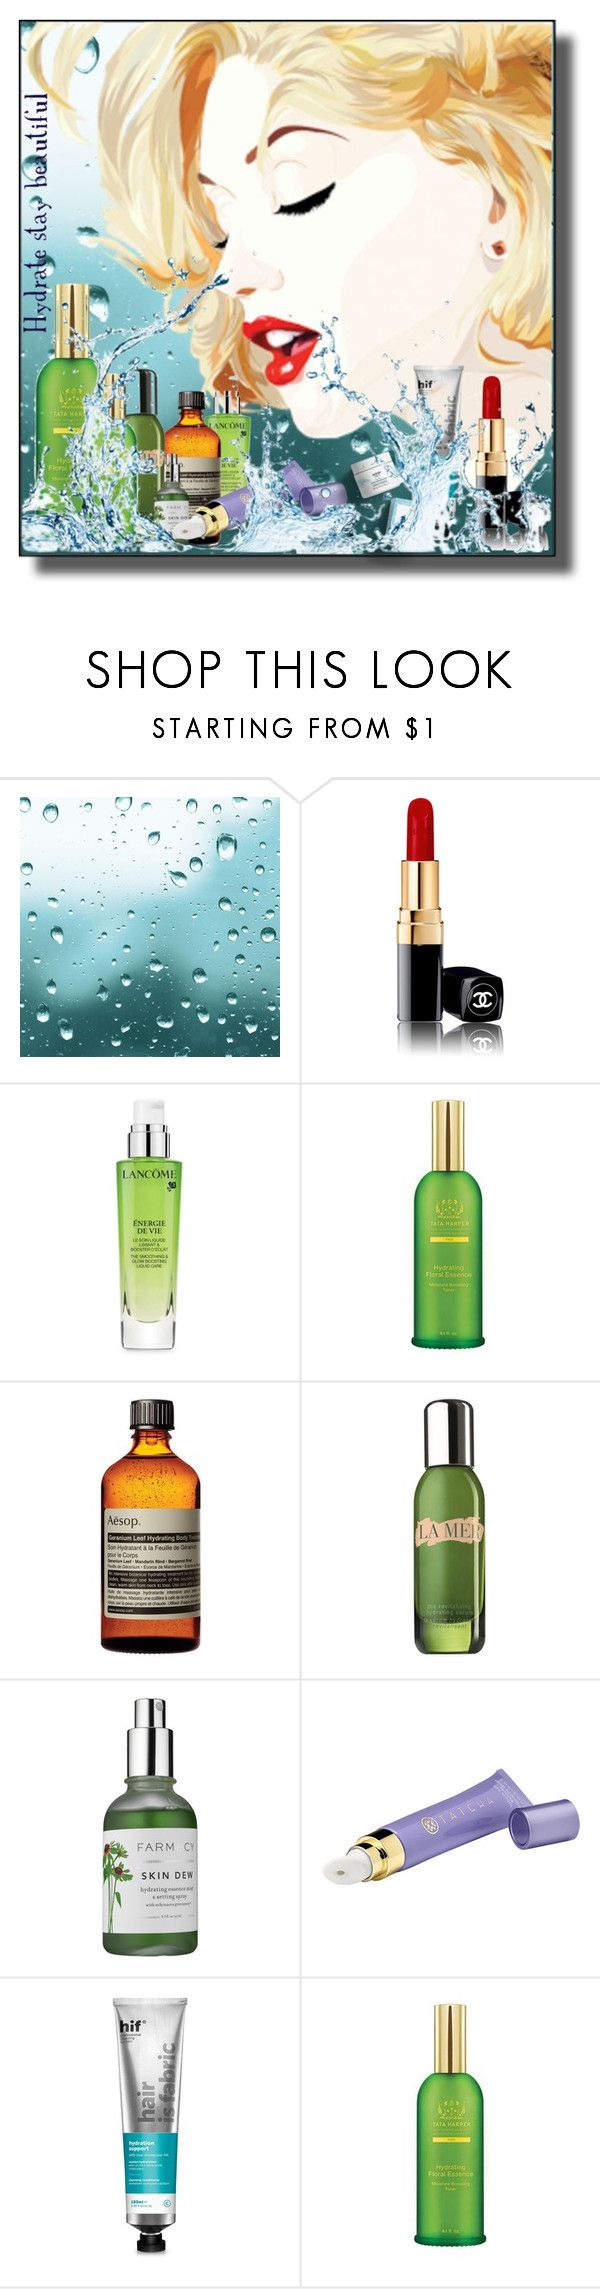 """""""Hydrate stay beautiful"""" by kelly-floramoon-legg ❤ liked on Polyvore featuring beauty, Chanel, Lancôme, Tata Harper, Aesop, La Mer, Farmacy, Tatcha and hif"""